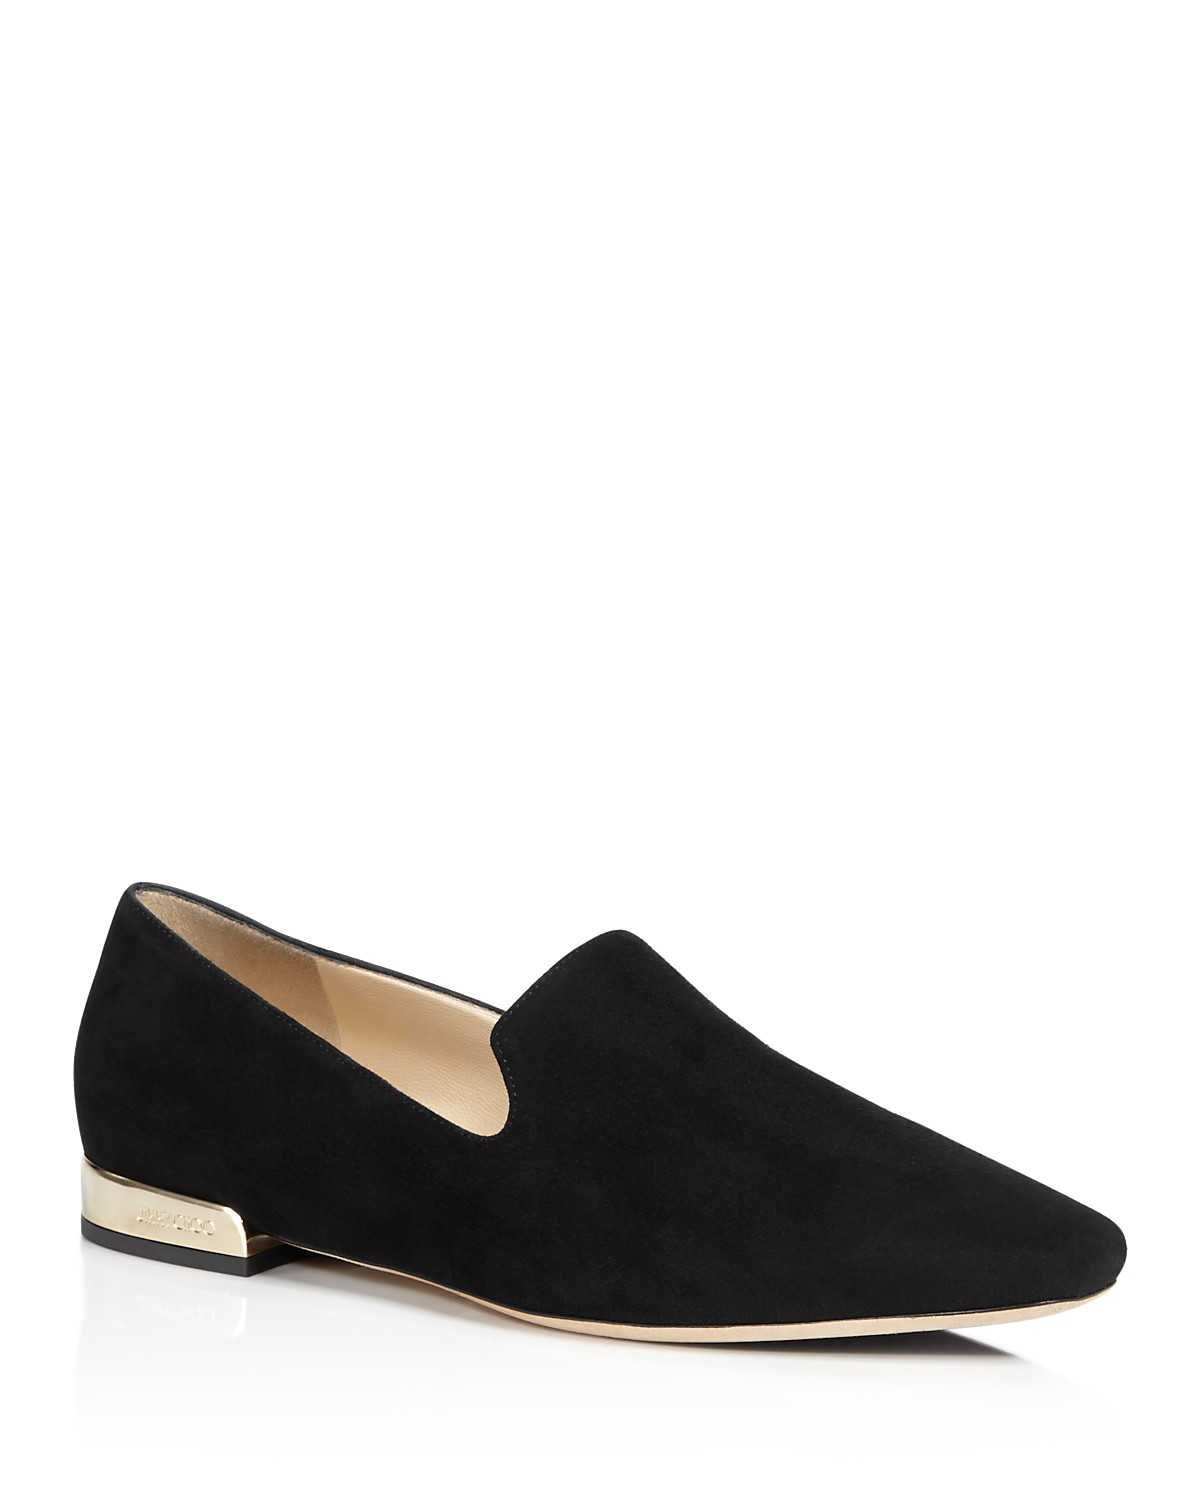 buy cheap 100% authentic Jimmy Choo Leather Square-Toe Flats outlet with mastercard gHDFKanl0